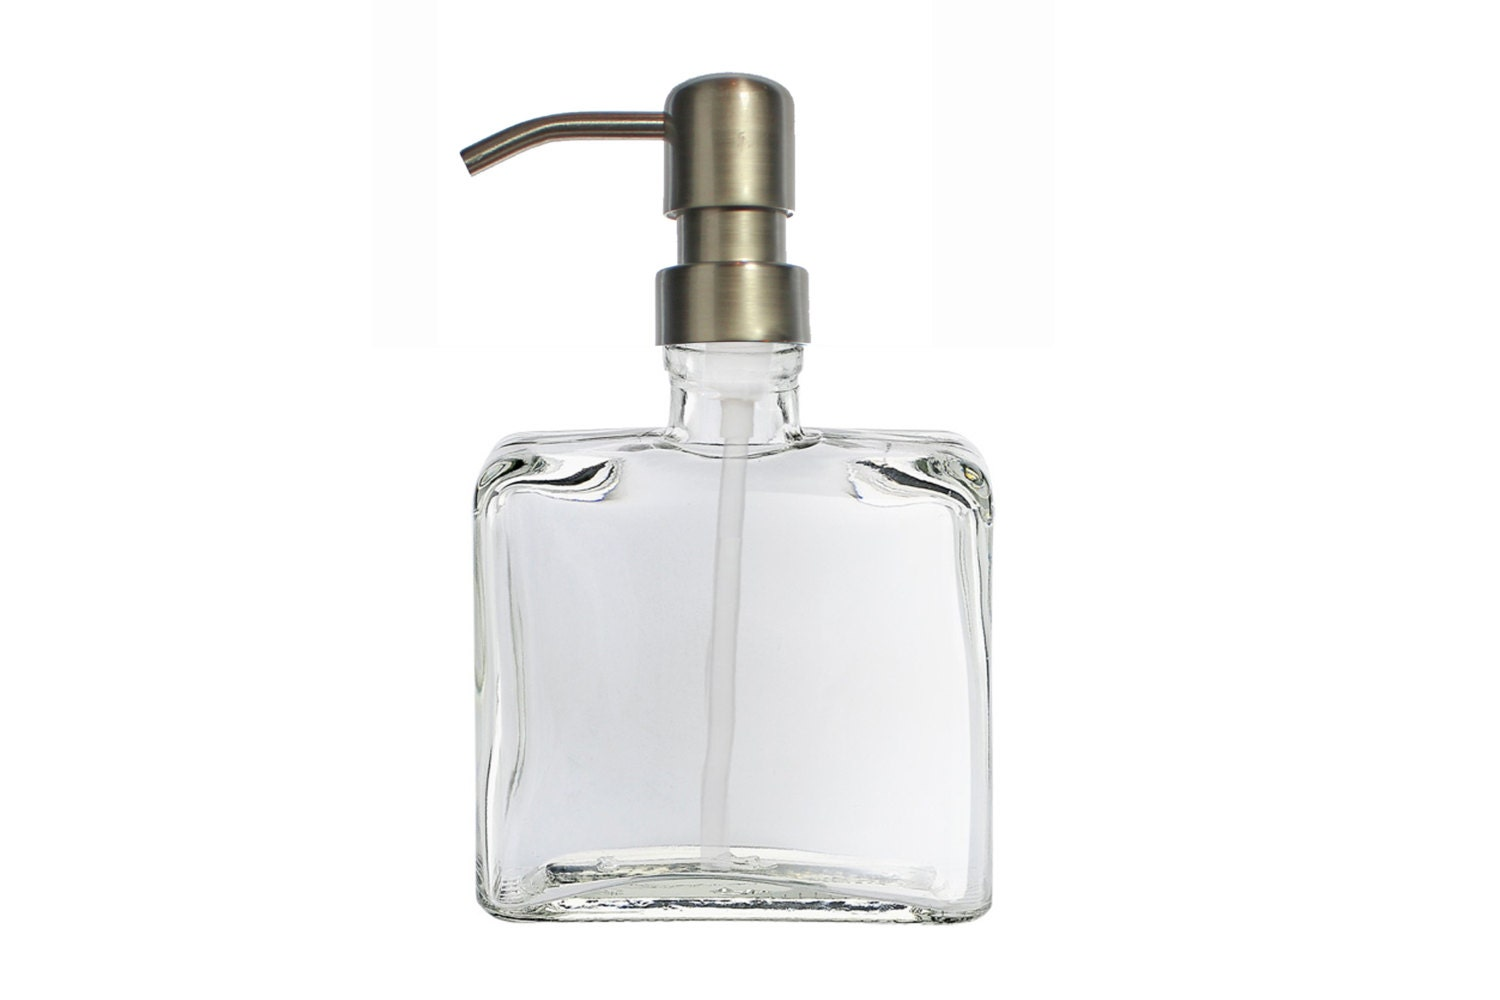 Glass Soap Dispenser with Metal Pump square by SouthernHomeSupply